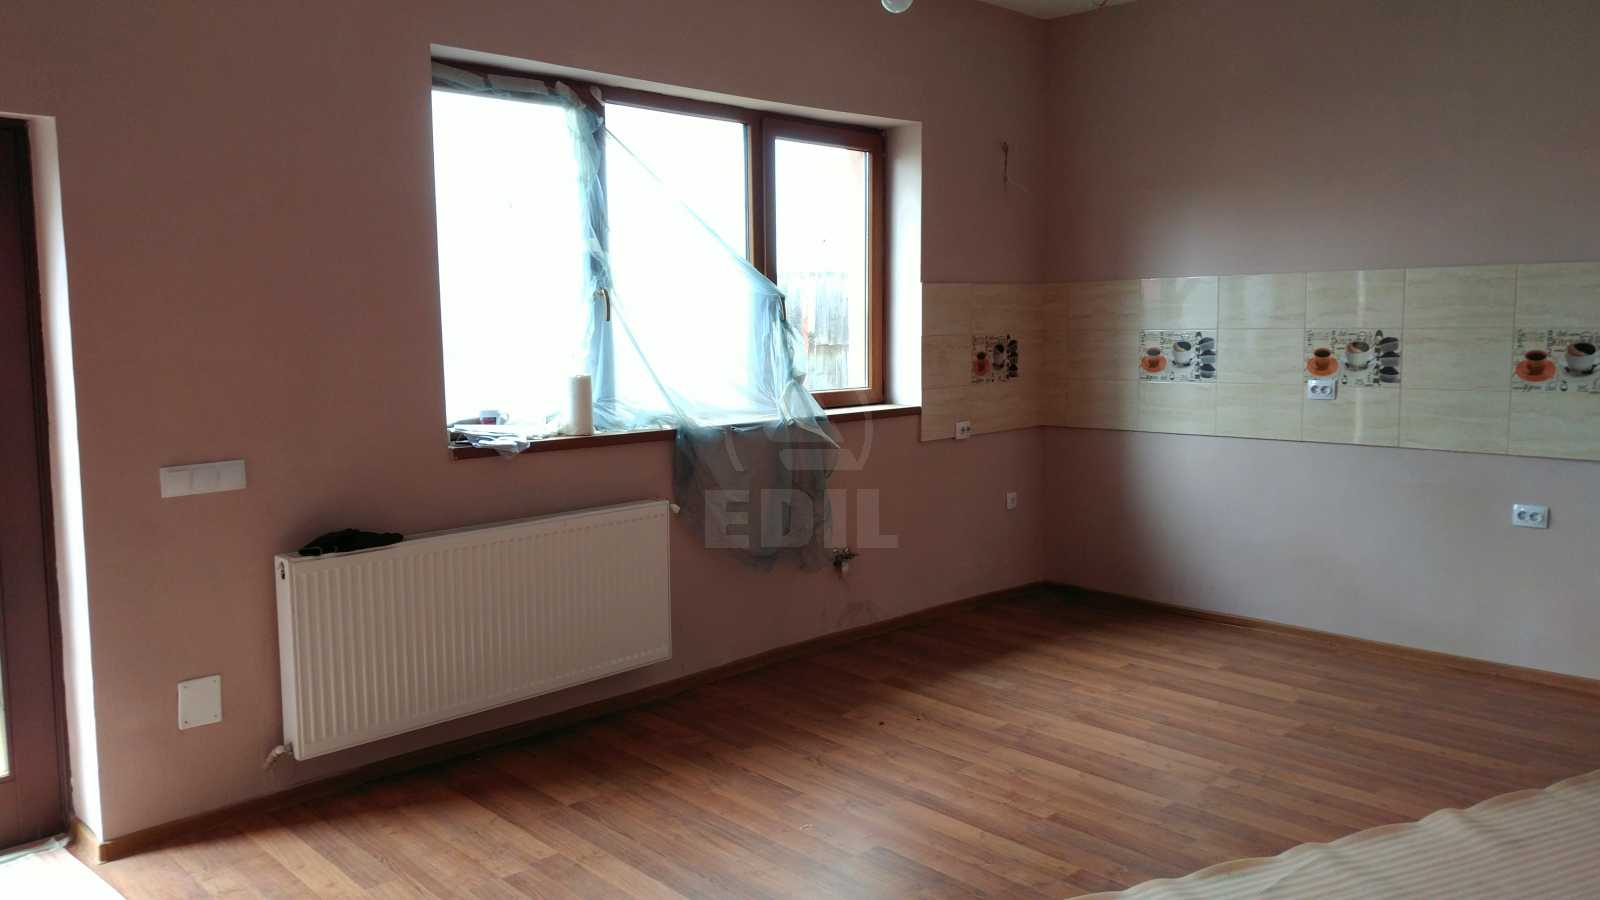 House for rent 3 rooms, CACJ284919-7